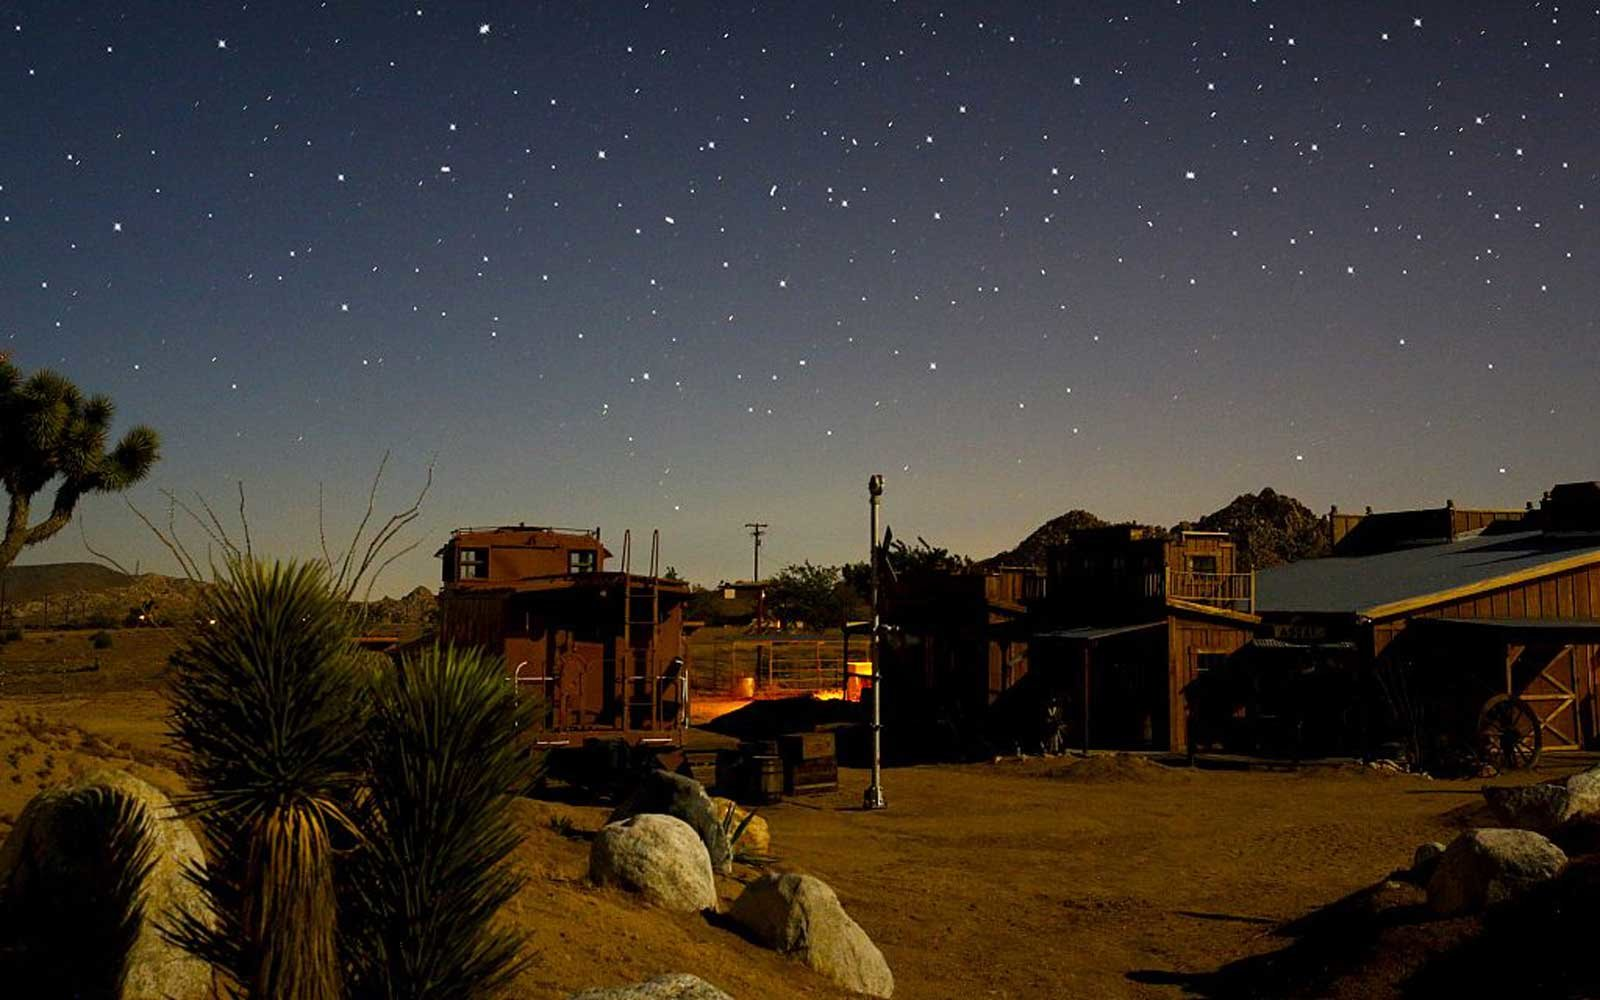 Desert Retreat, San Bernardino's High Desert, California